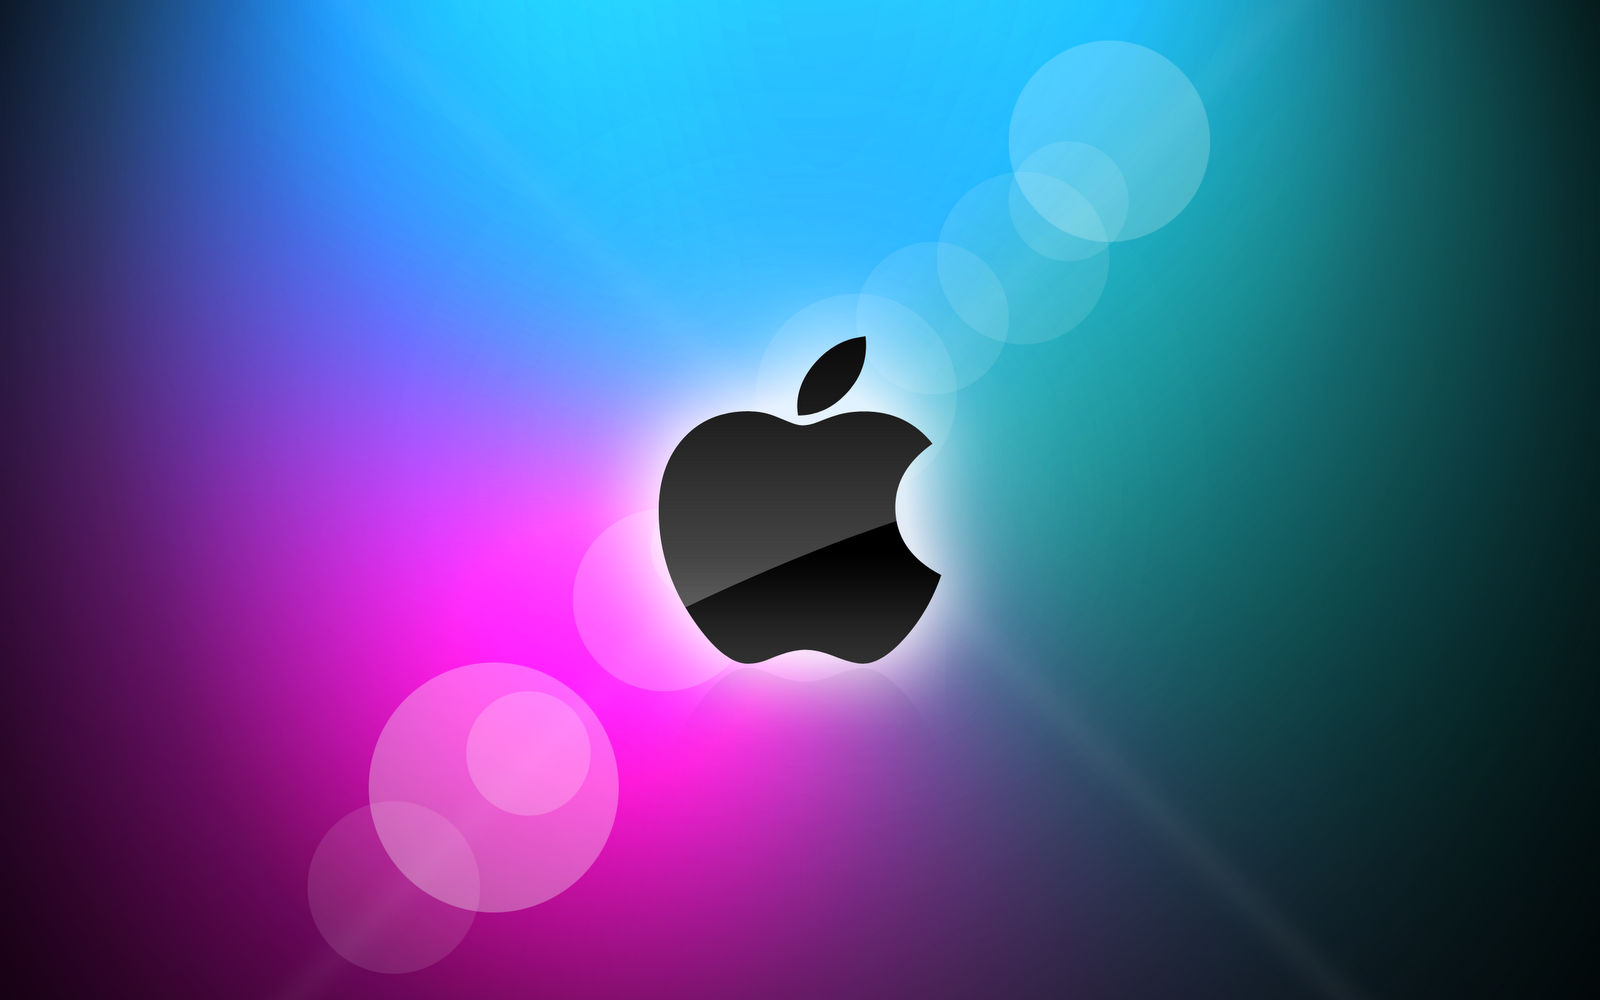 apple iphone wallpaper apple iphone hd wallpapers hd wallpapers 4264